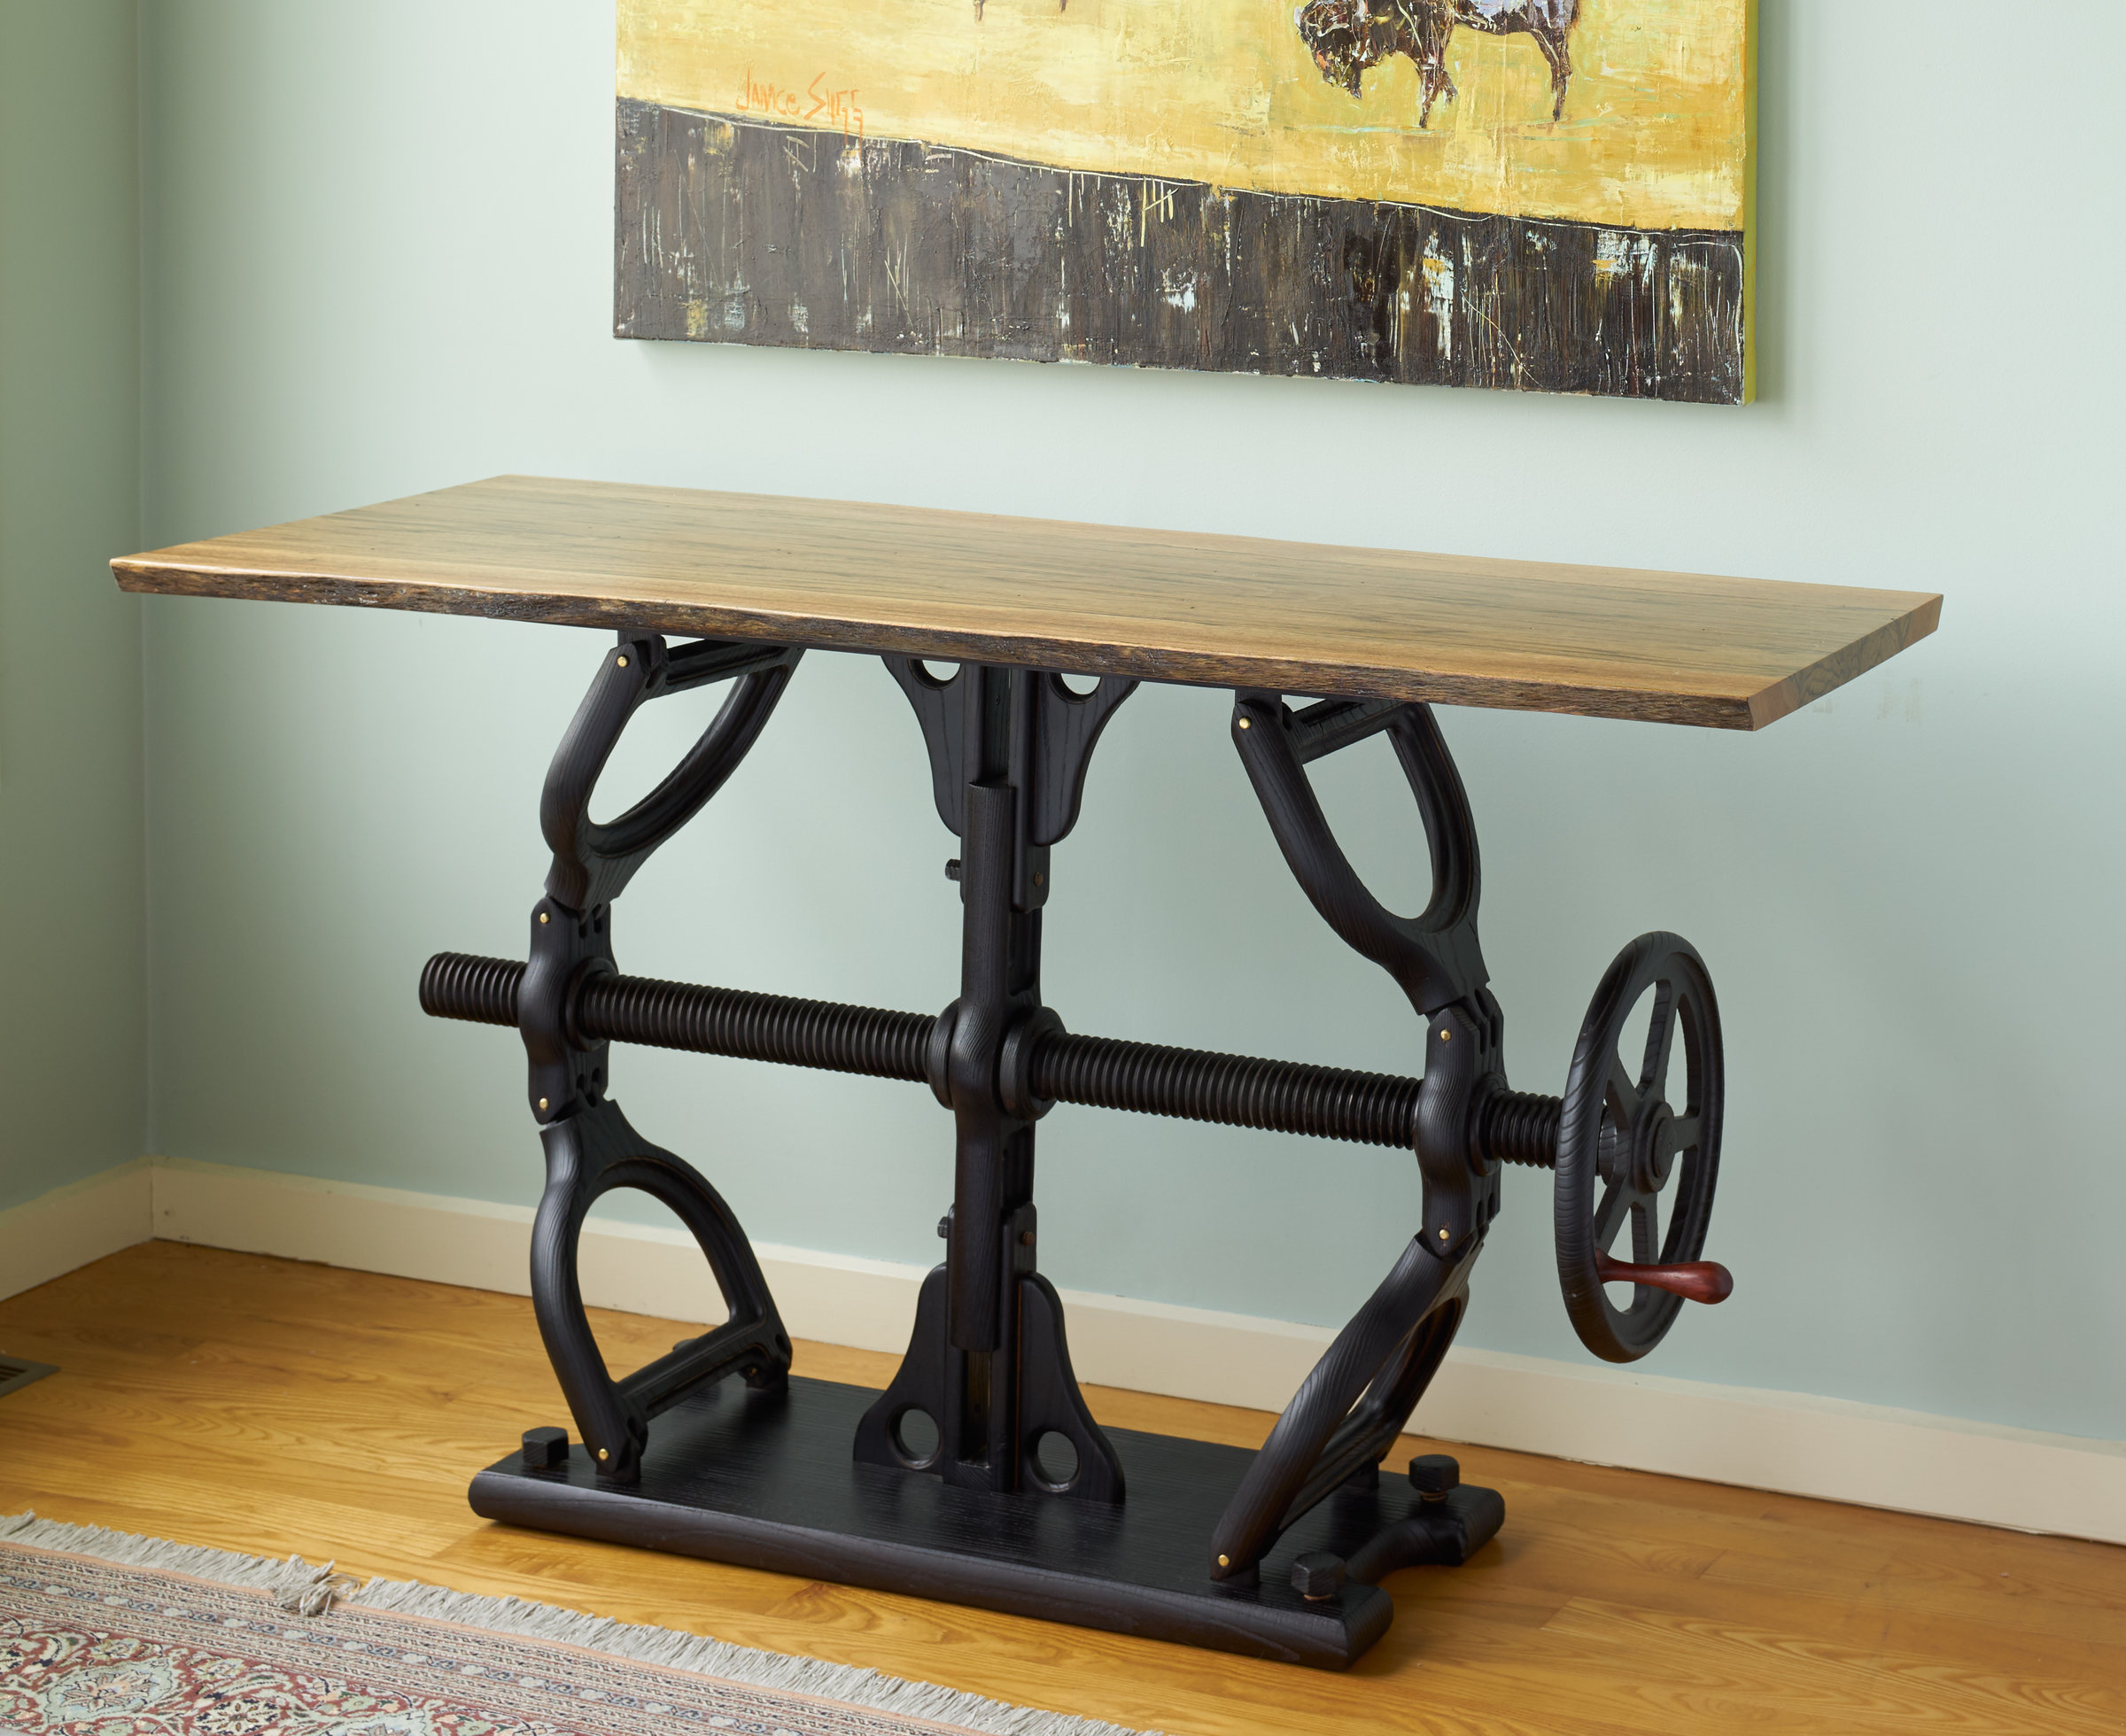 Crank table by james pearce wood console table artful home - Table console ancienne ...